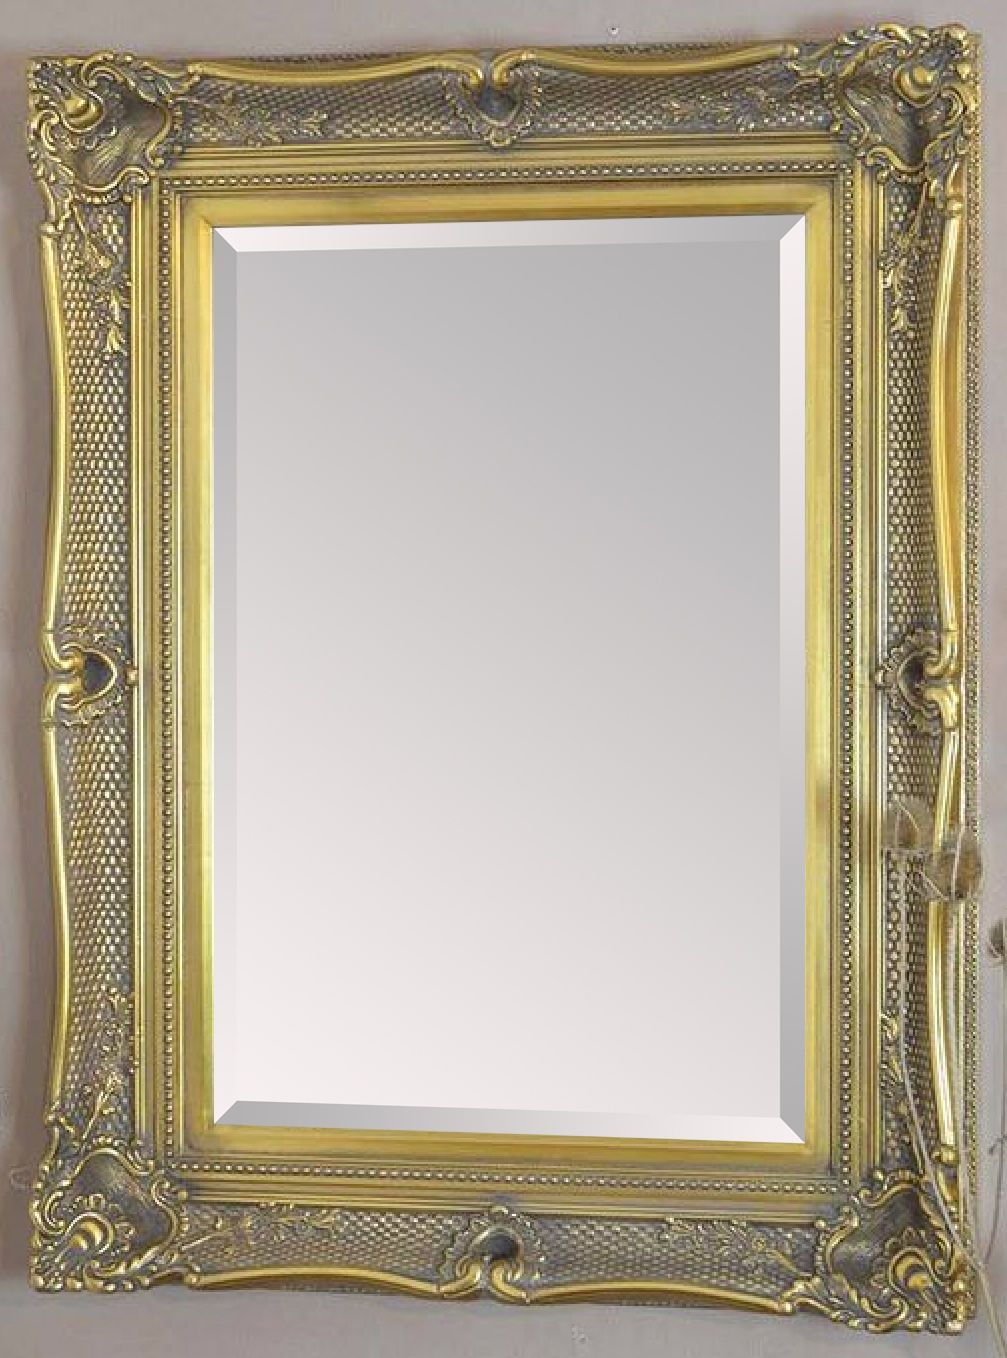 Huge antique gold decorative mirror save s other sizes for Unique mirror frames